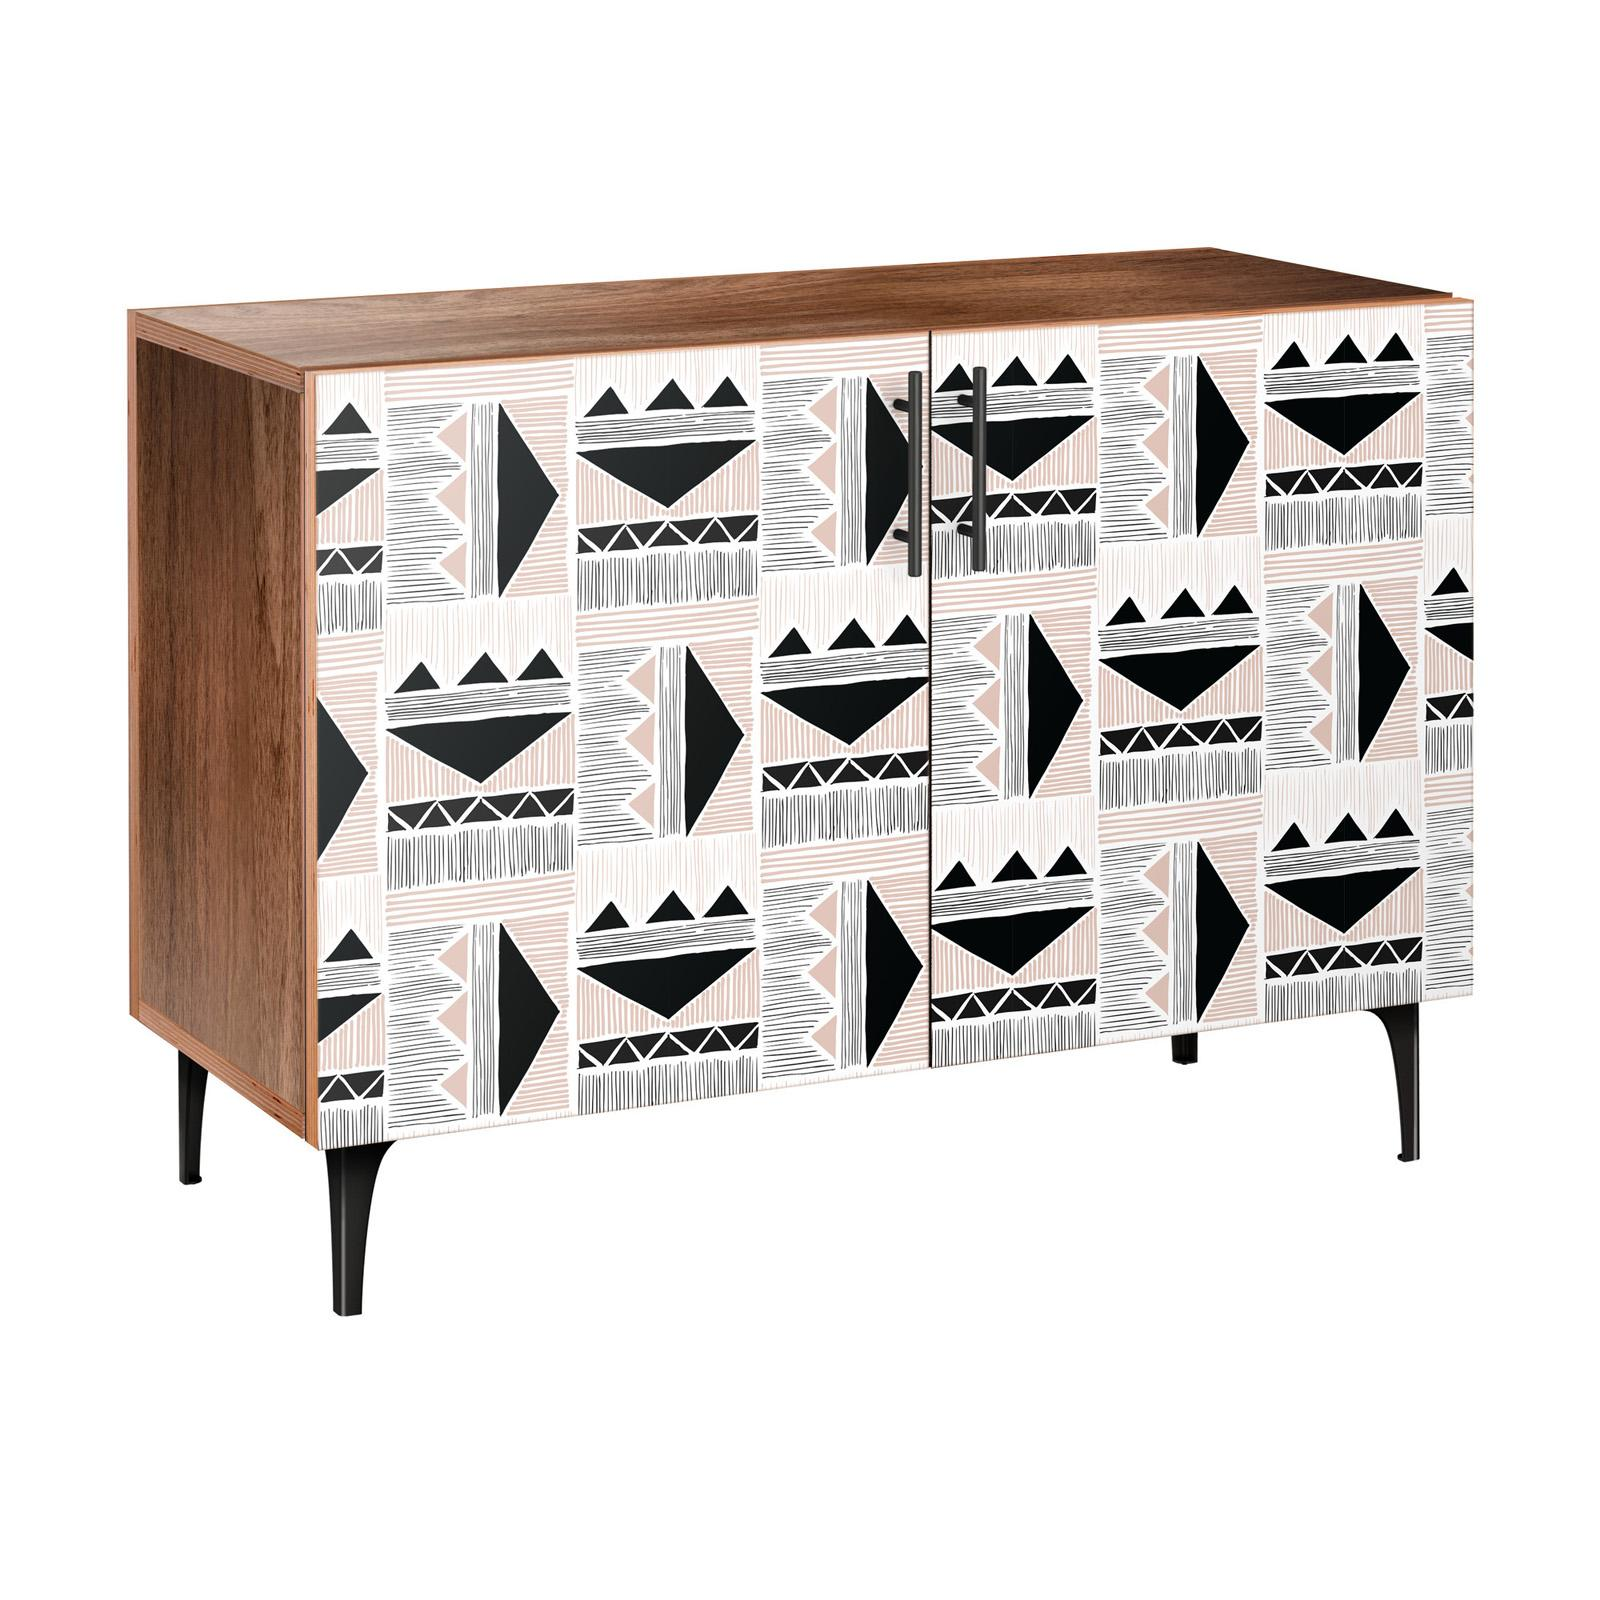 Nyekoncept Mudcloth Print Arc Credenza - 13002627